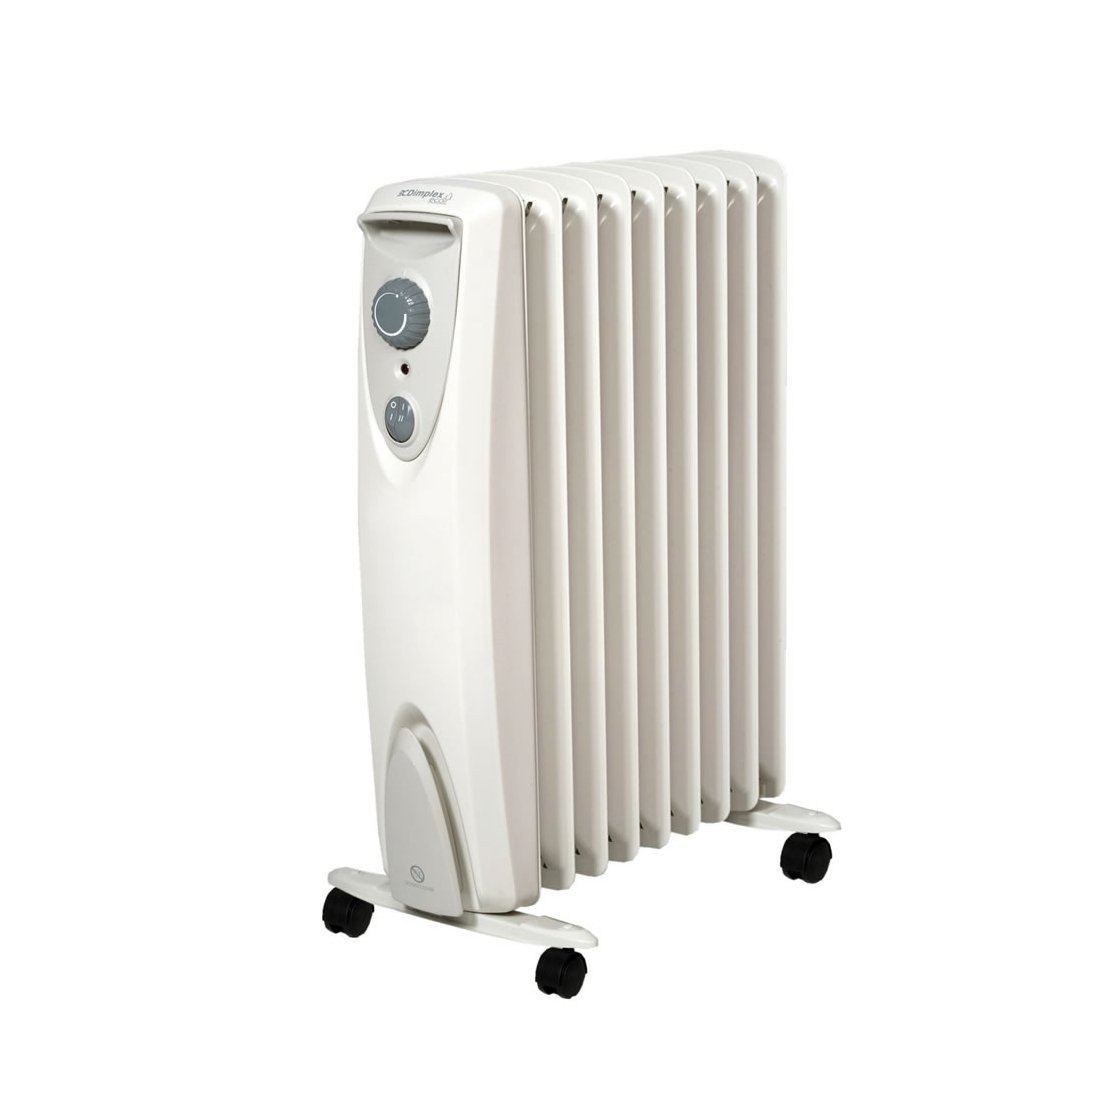 Dimplex Electric Oil Free Column Heater 2KW OFRC20N